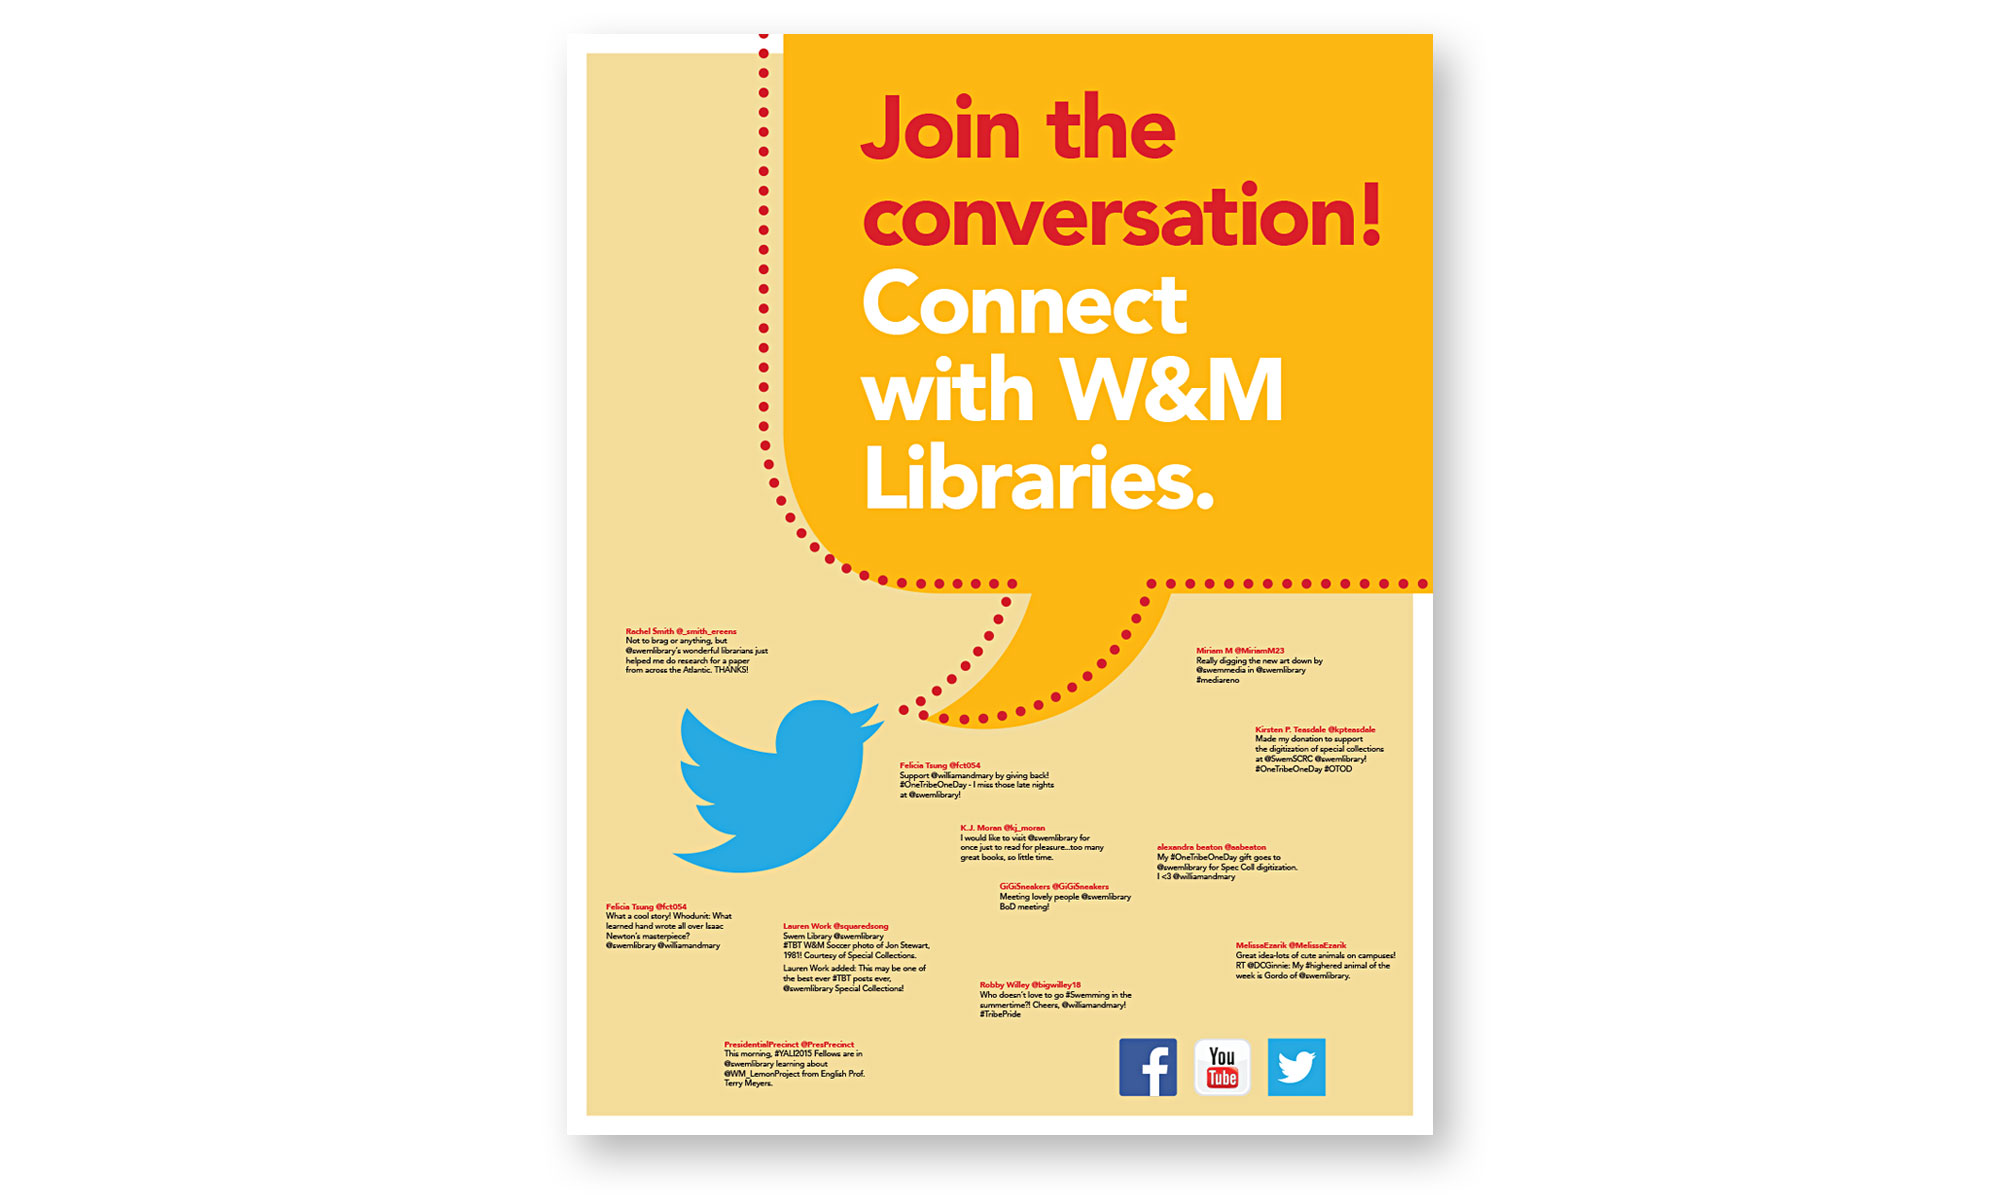 Connect with WM Libraries poster